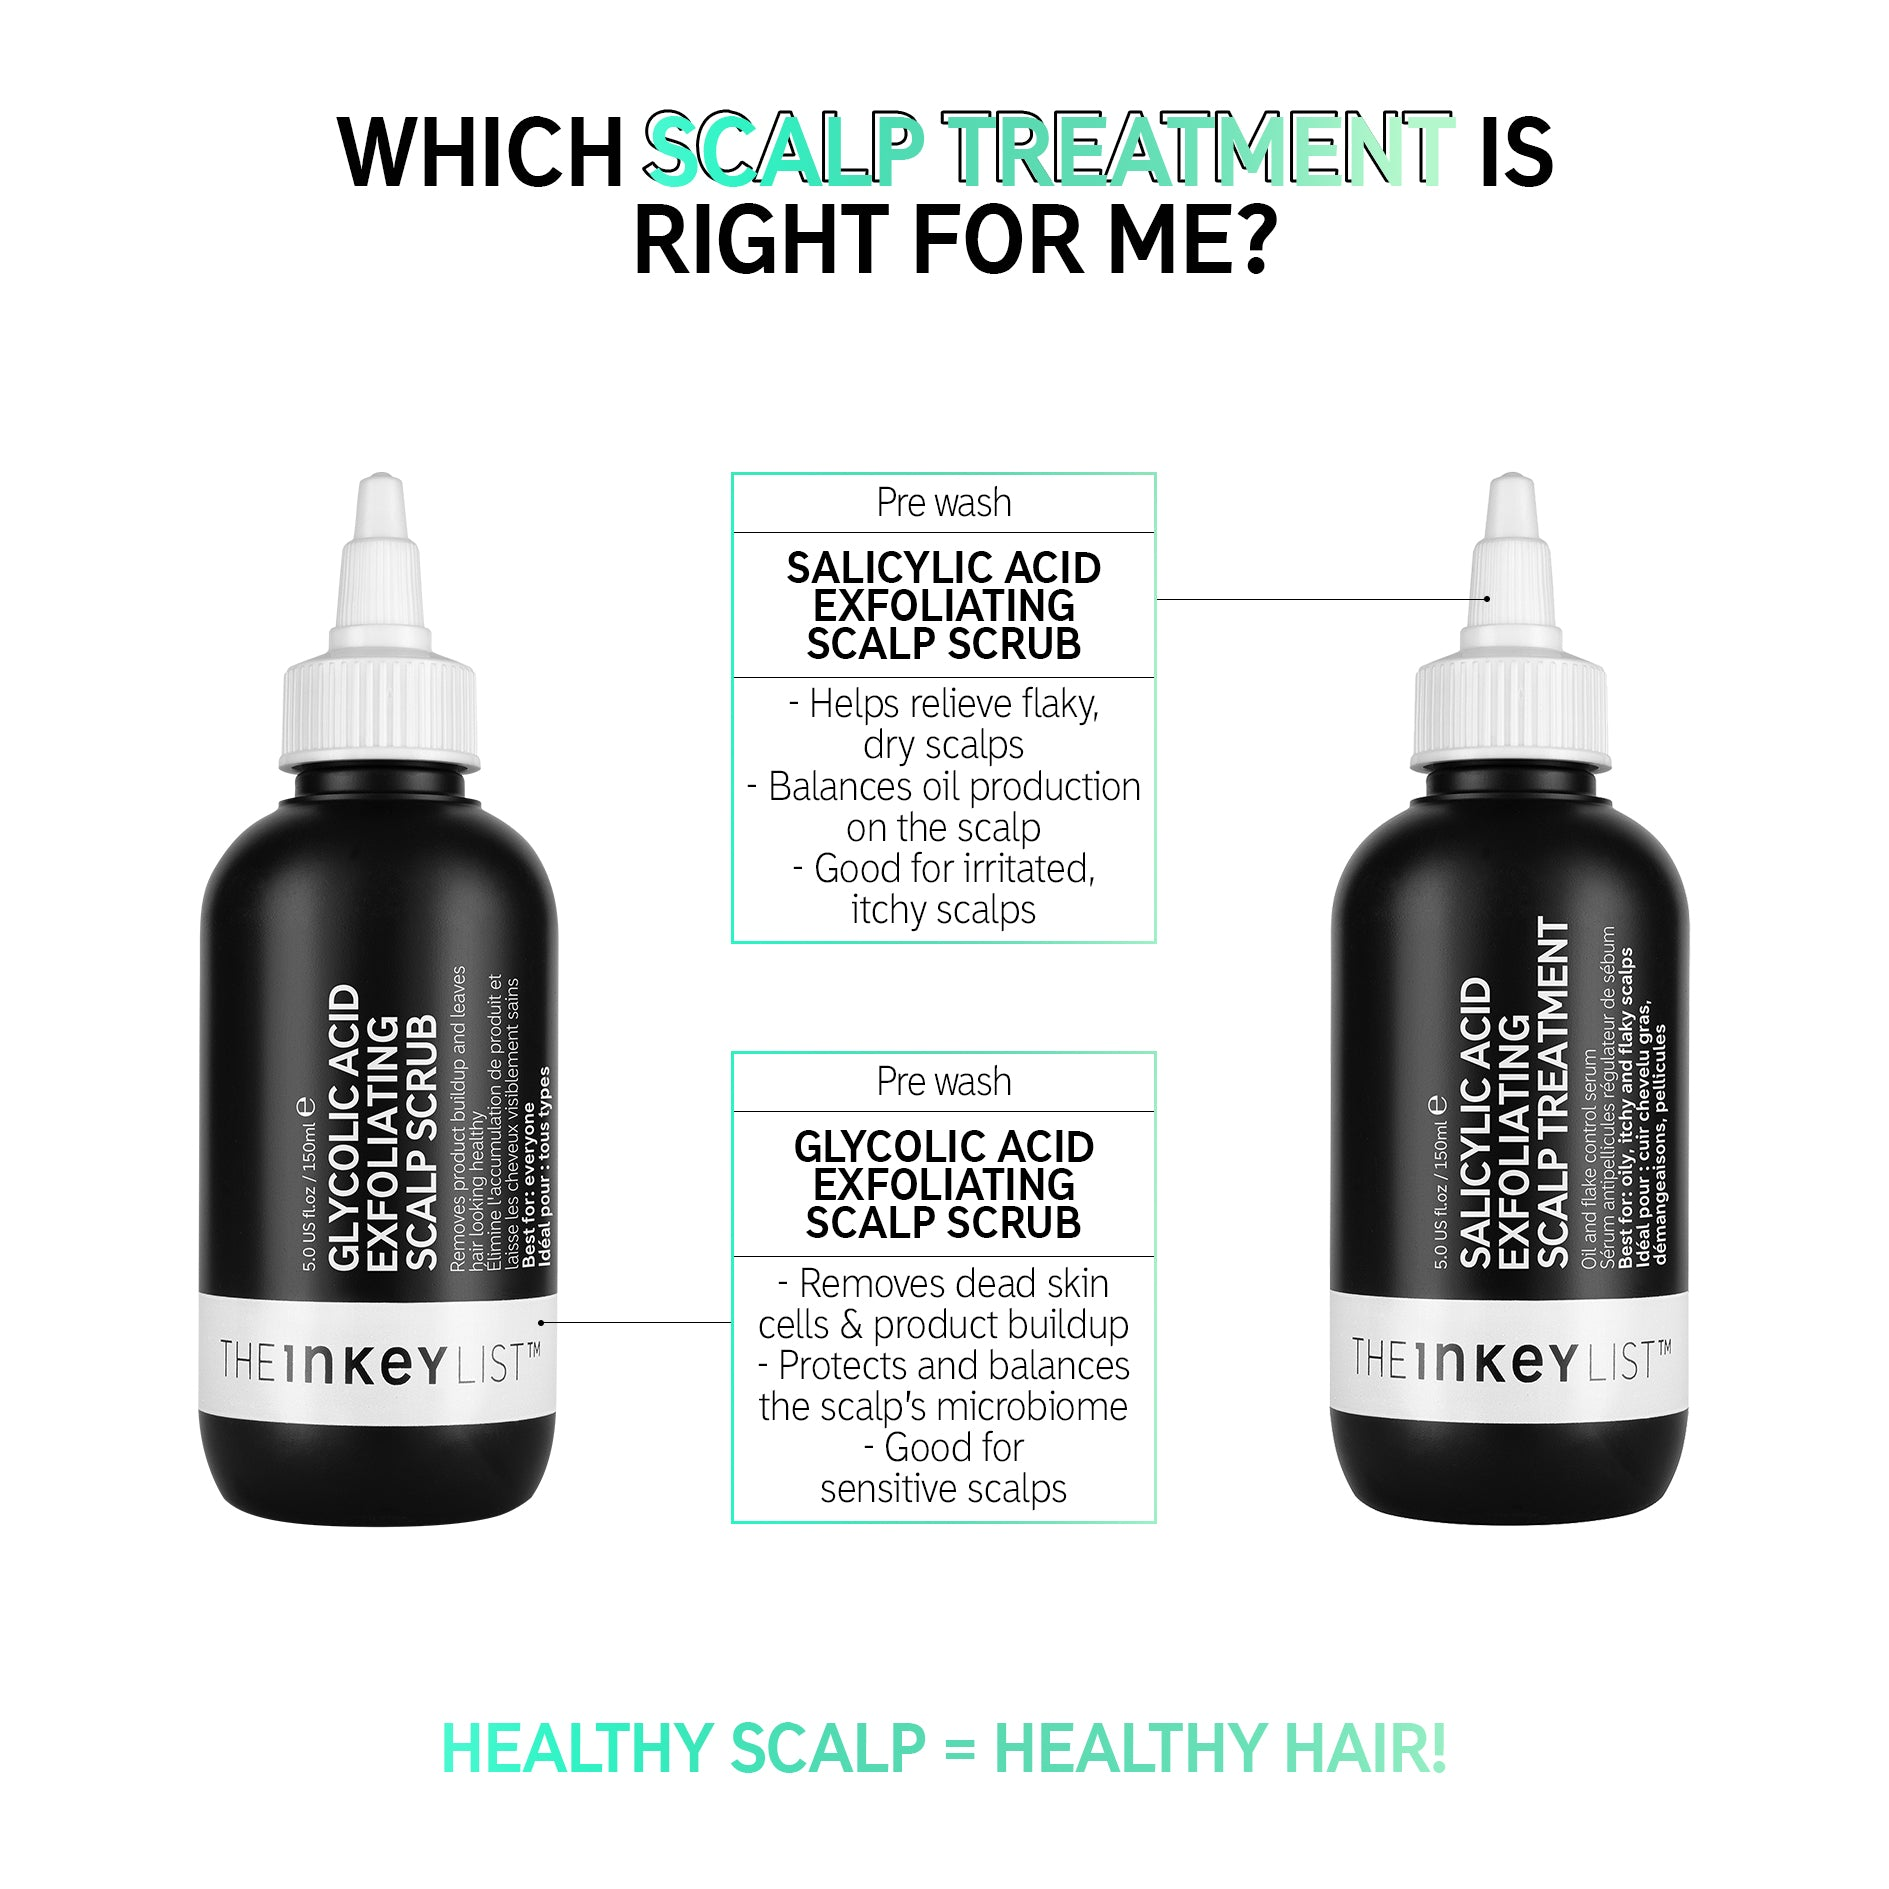 Which Scalp Treatment is right for me?